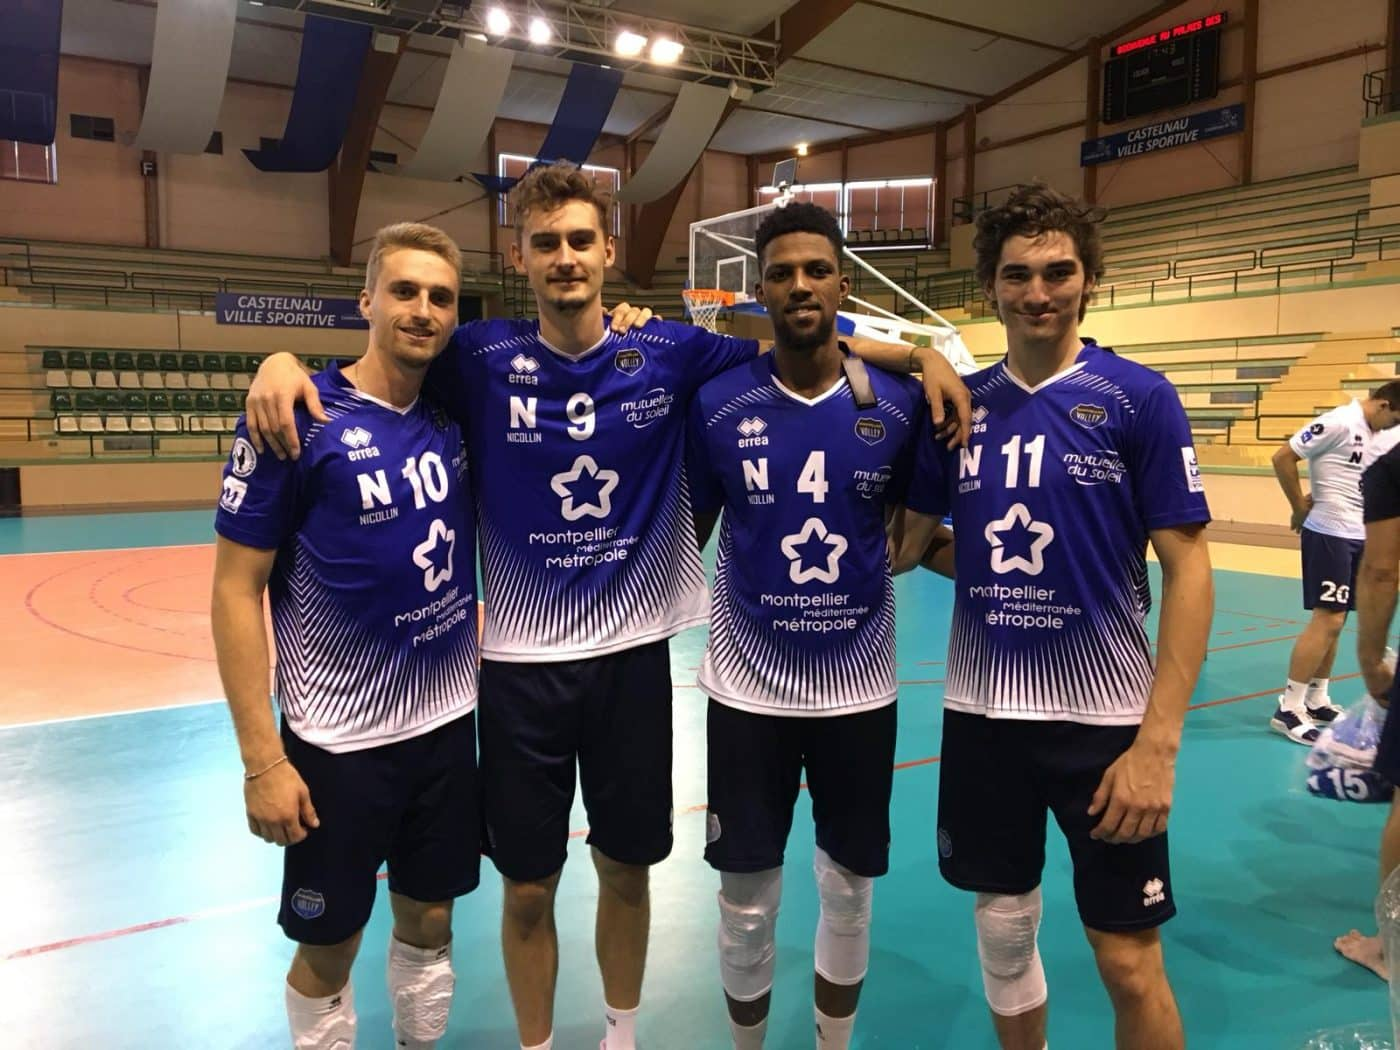 nouveau-maillot-volley-montpellier-volley-UC-errea-2018-2019-LAM-2